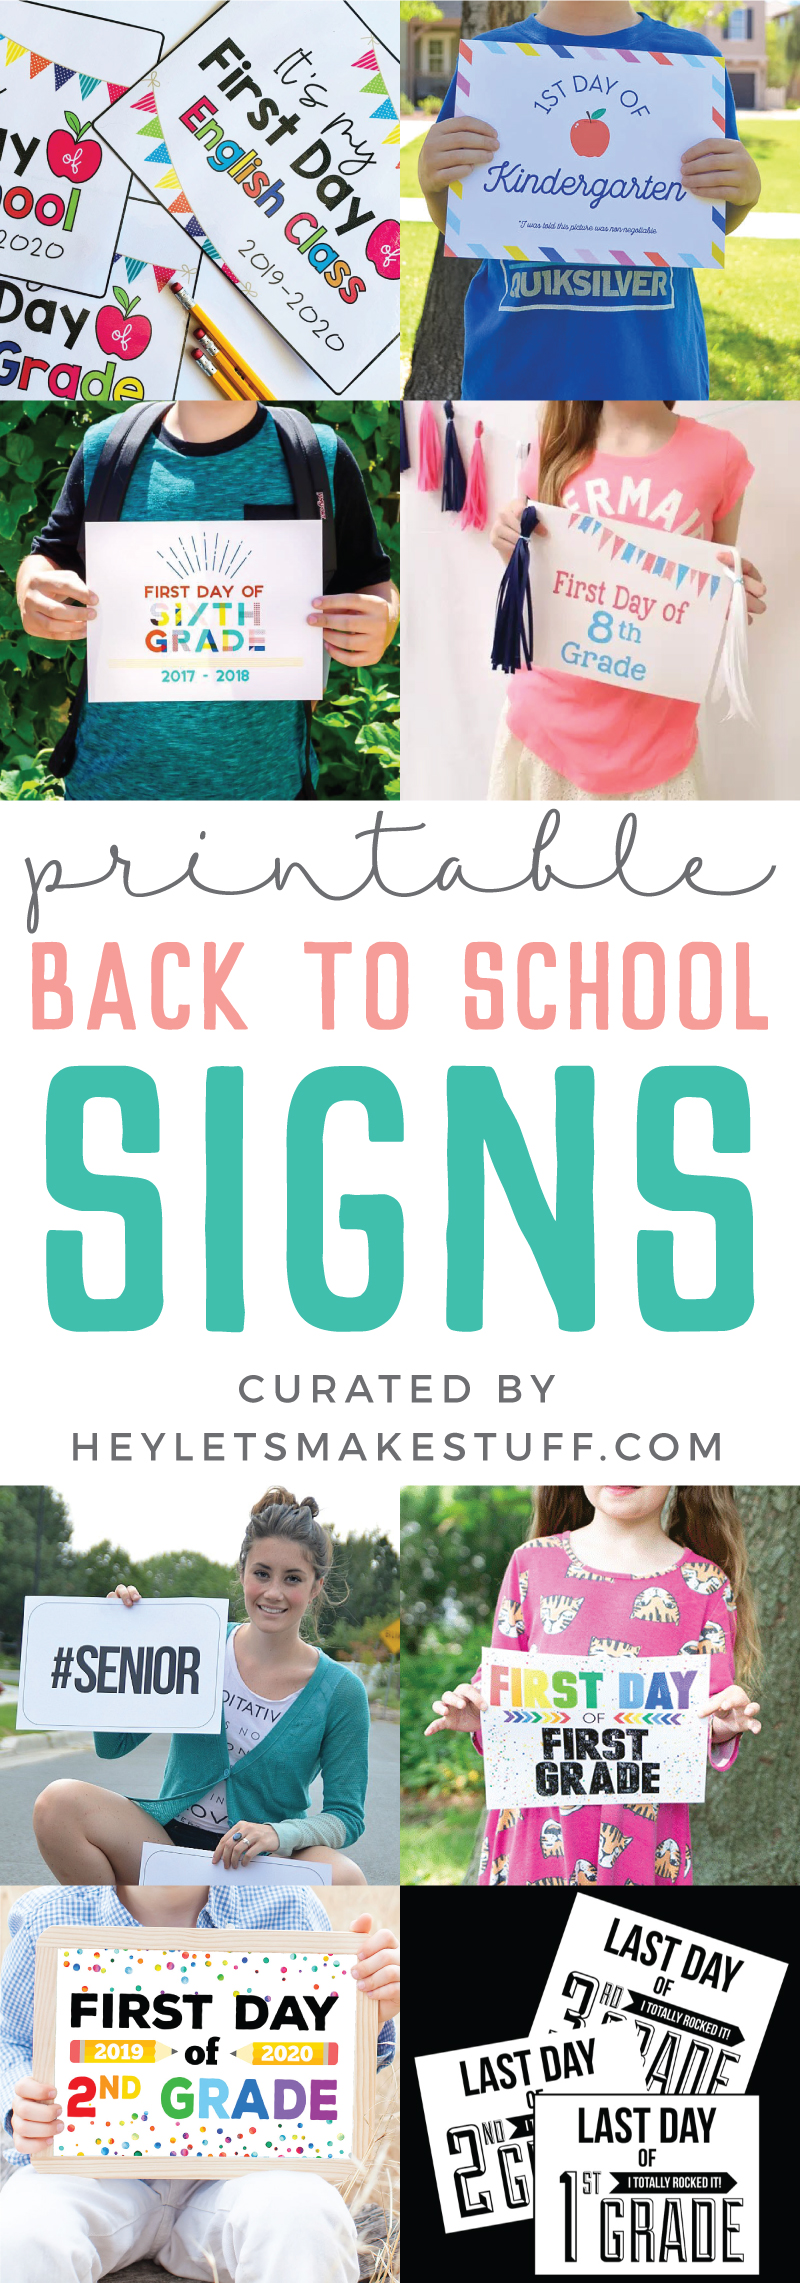 photograph regarding Printable Back to School Signs referred to as The Great Printable To start with Working day of College Indications - Hey, Permits